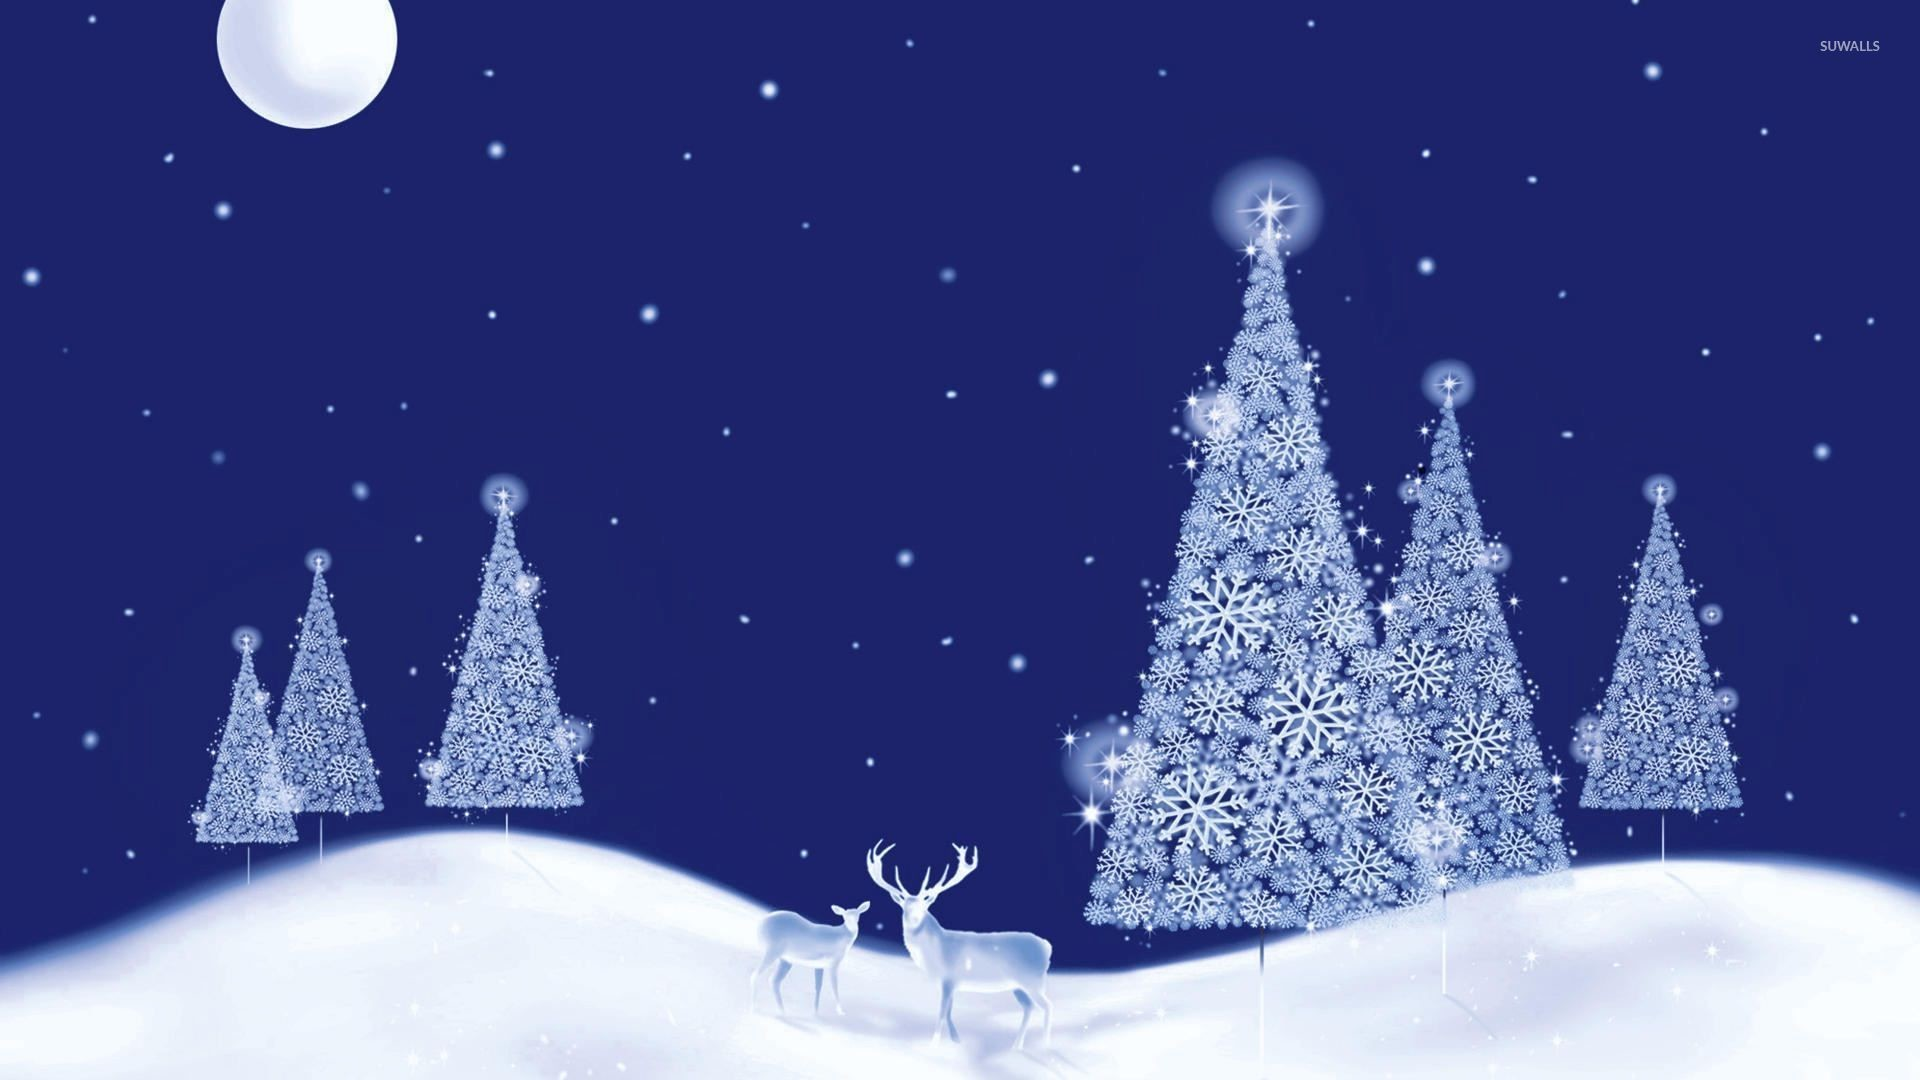 1920x1080 Glowing white Christmas trees on a beautiful winter night wallpaper